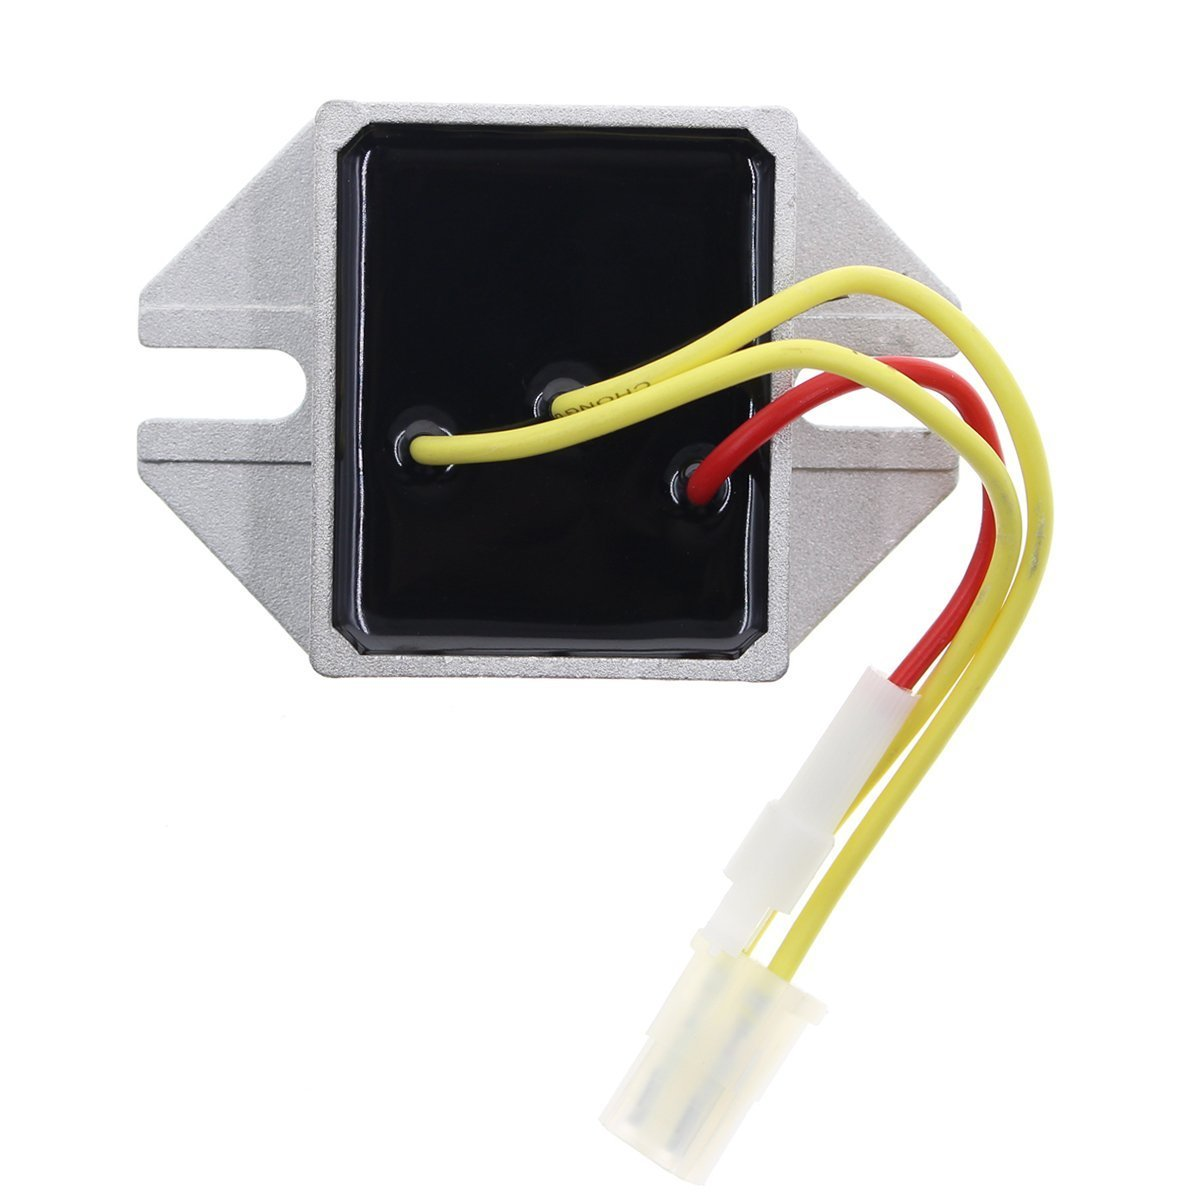 Affordable Parts New Electrical Voltage Regulator fit 845907 394890 797375 393374 691185 for Briggs & Stratton 192400 196400 226400 280700 351700 28M700 Engine